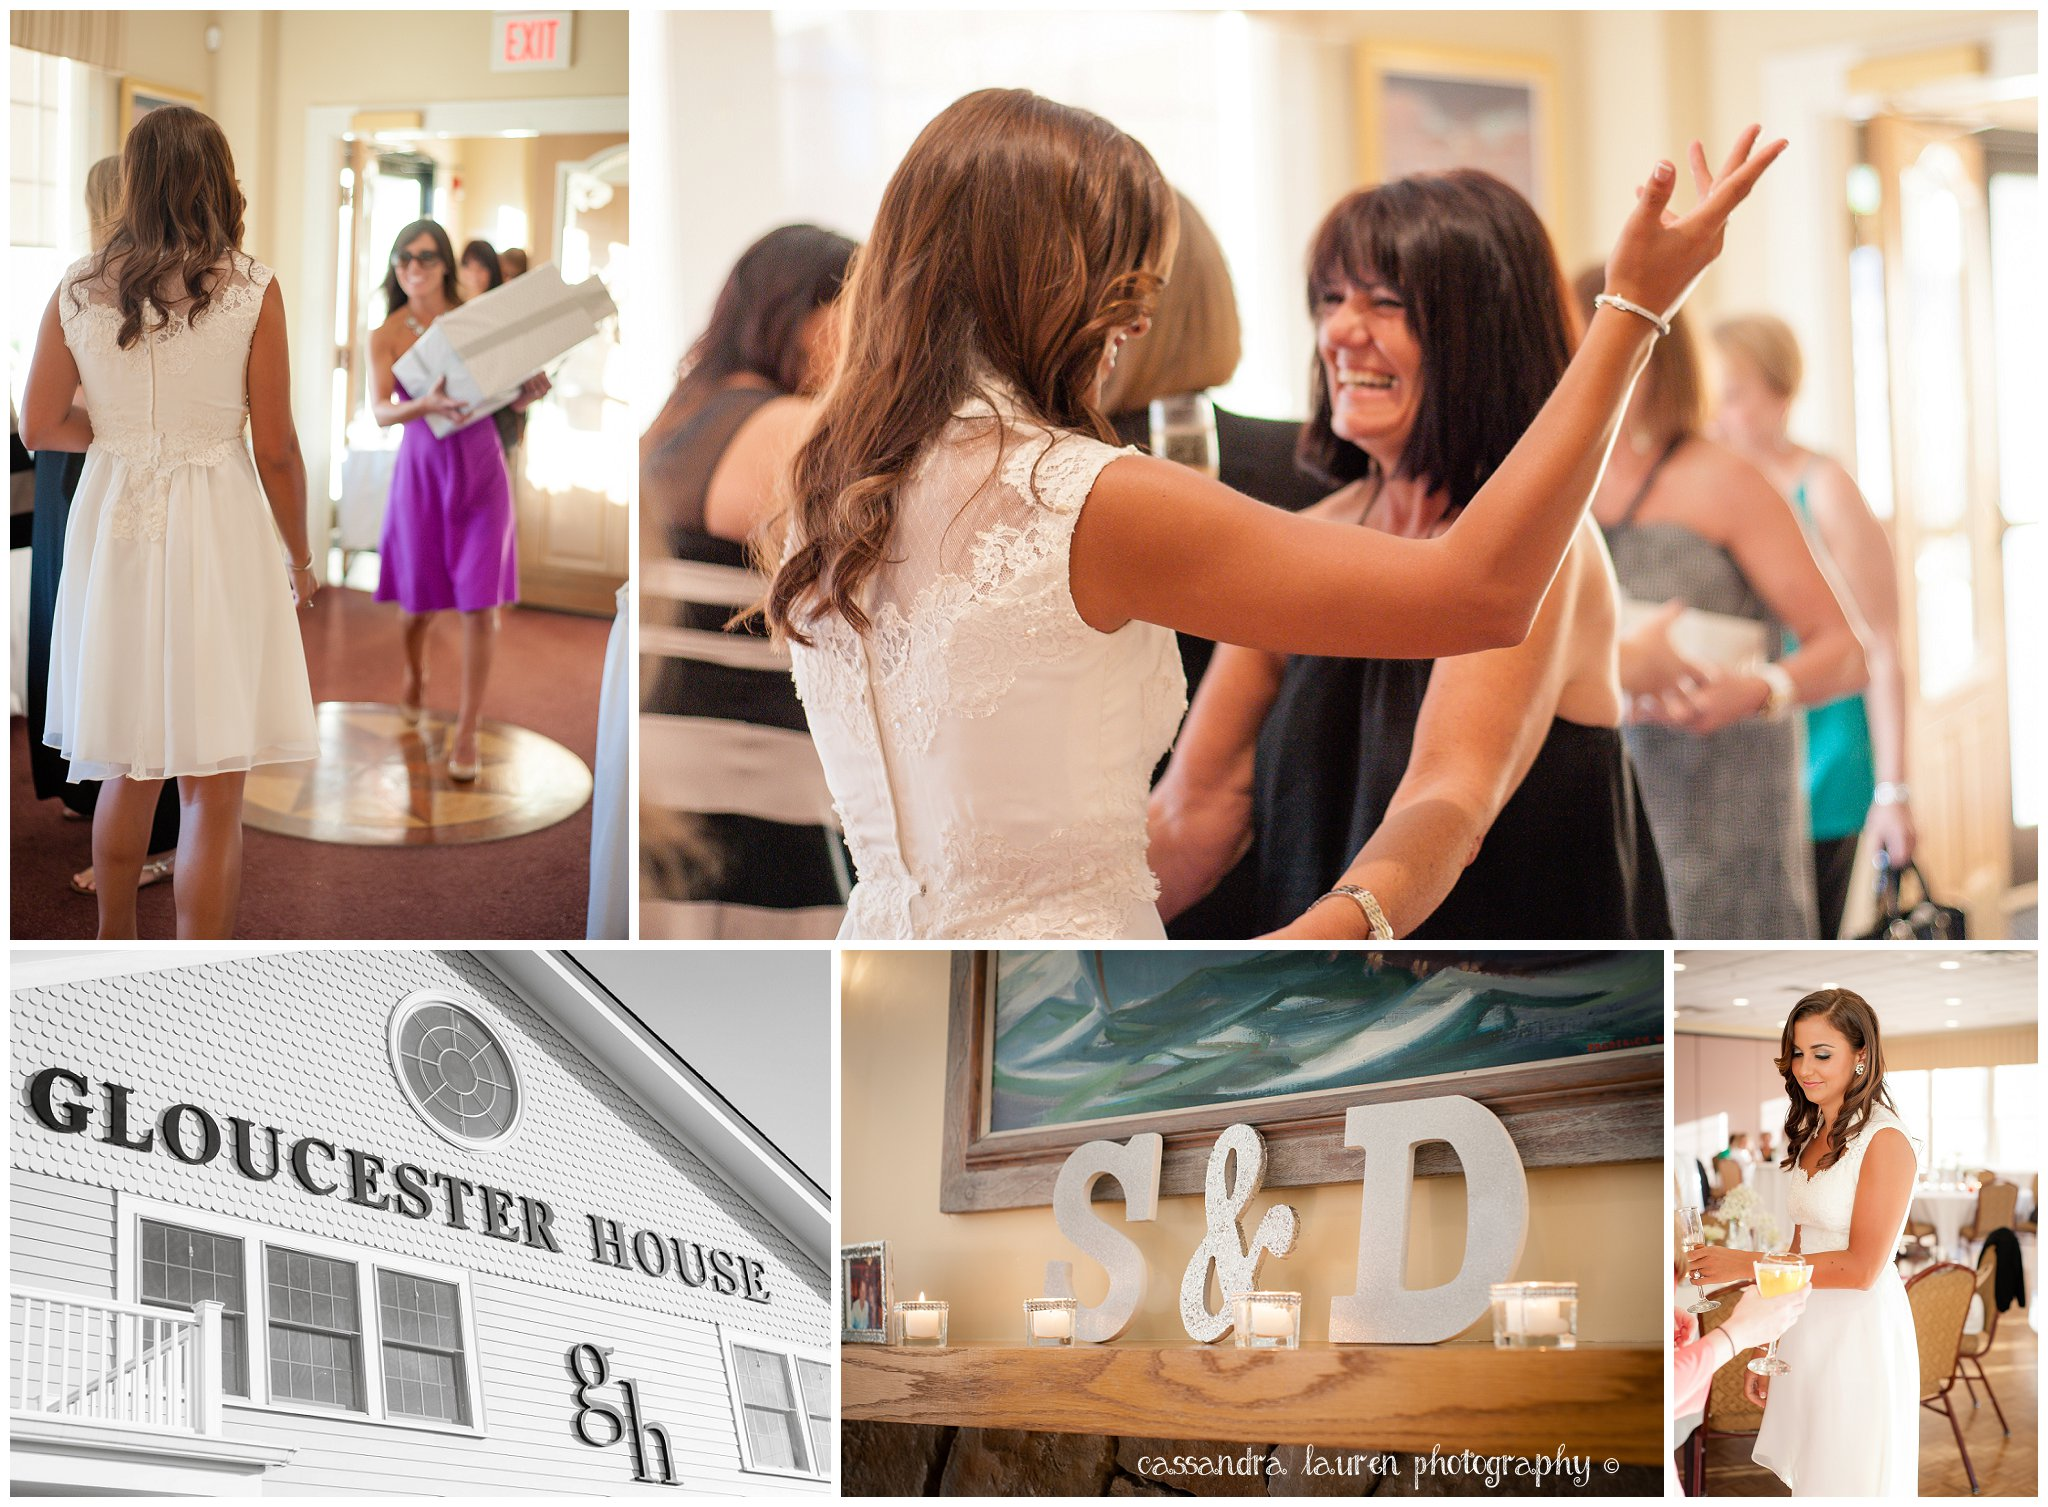 Gloucester House bridal shower pictures